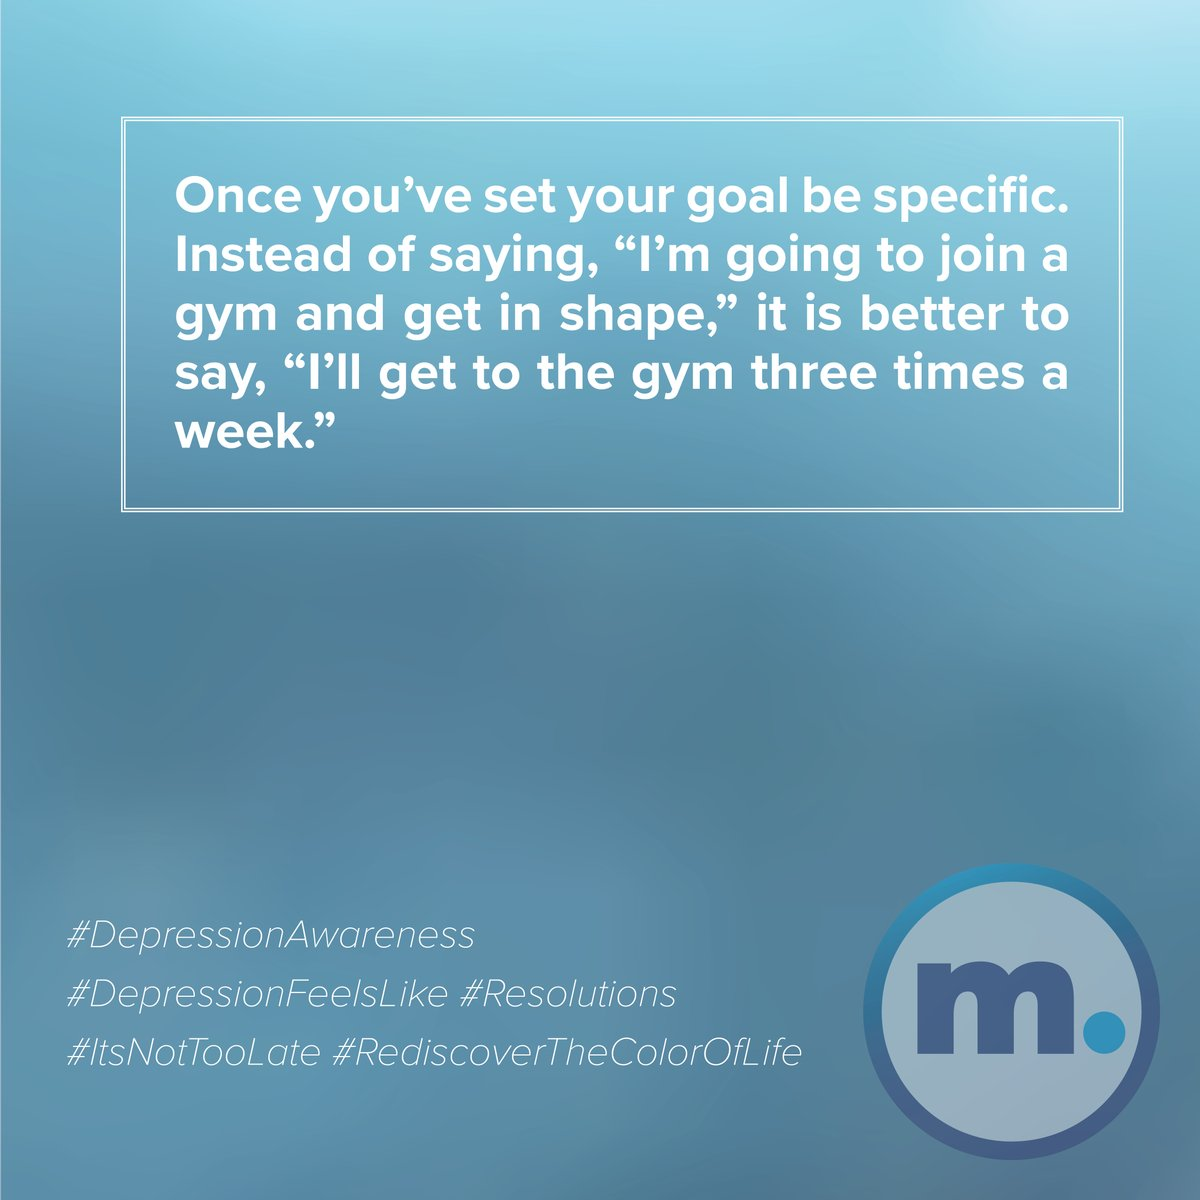 """Once you've set your goal be specific. Instead of saying, """"I'm going to join a gym and get in shape,"""" it is better to say, """"I'll get to the gym three times a week.""""  #DepressionAwareness #DepressionFeelsLike #Resolutions #ItsNotTooLate #RediscoverTheColorOfLife"""